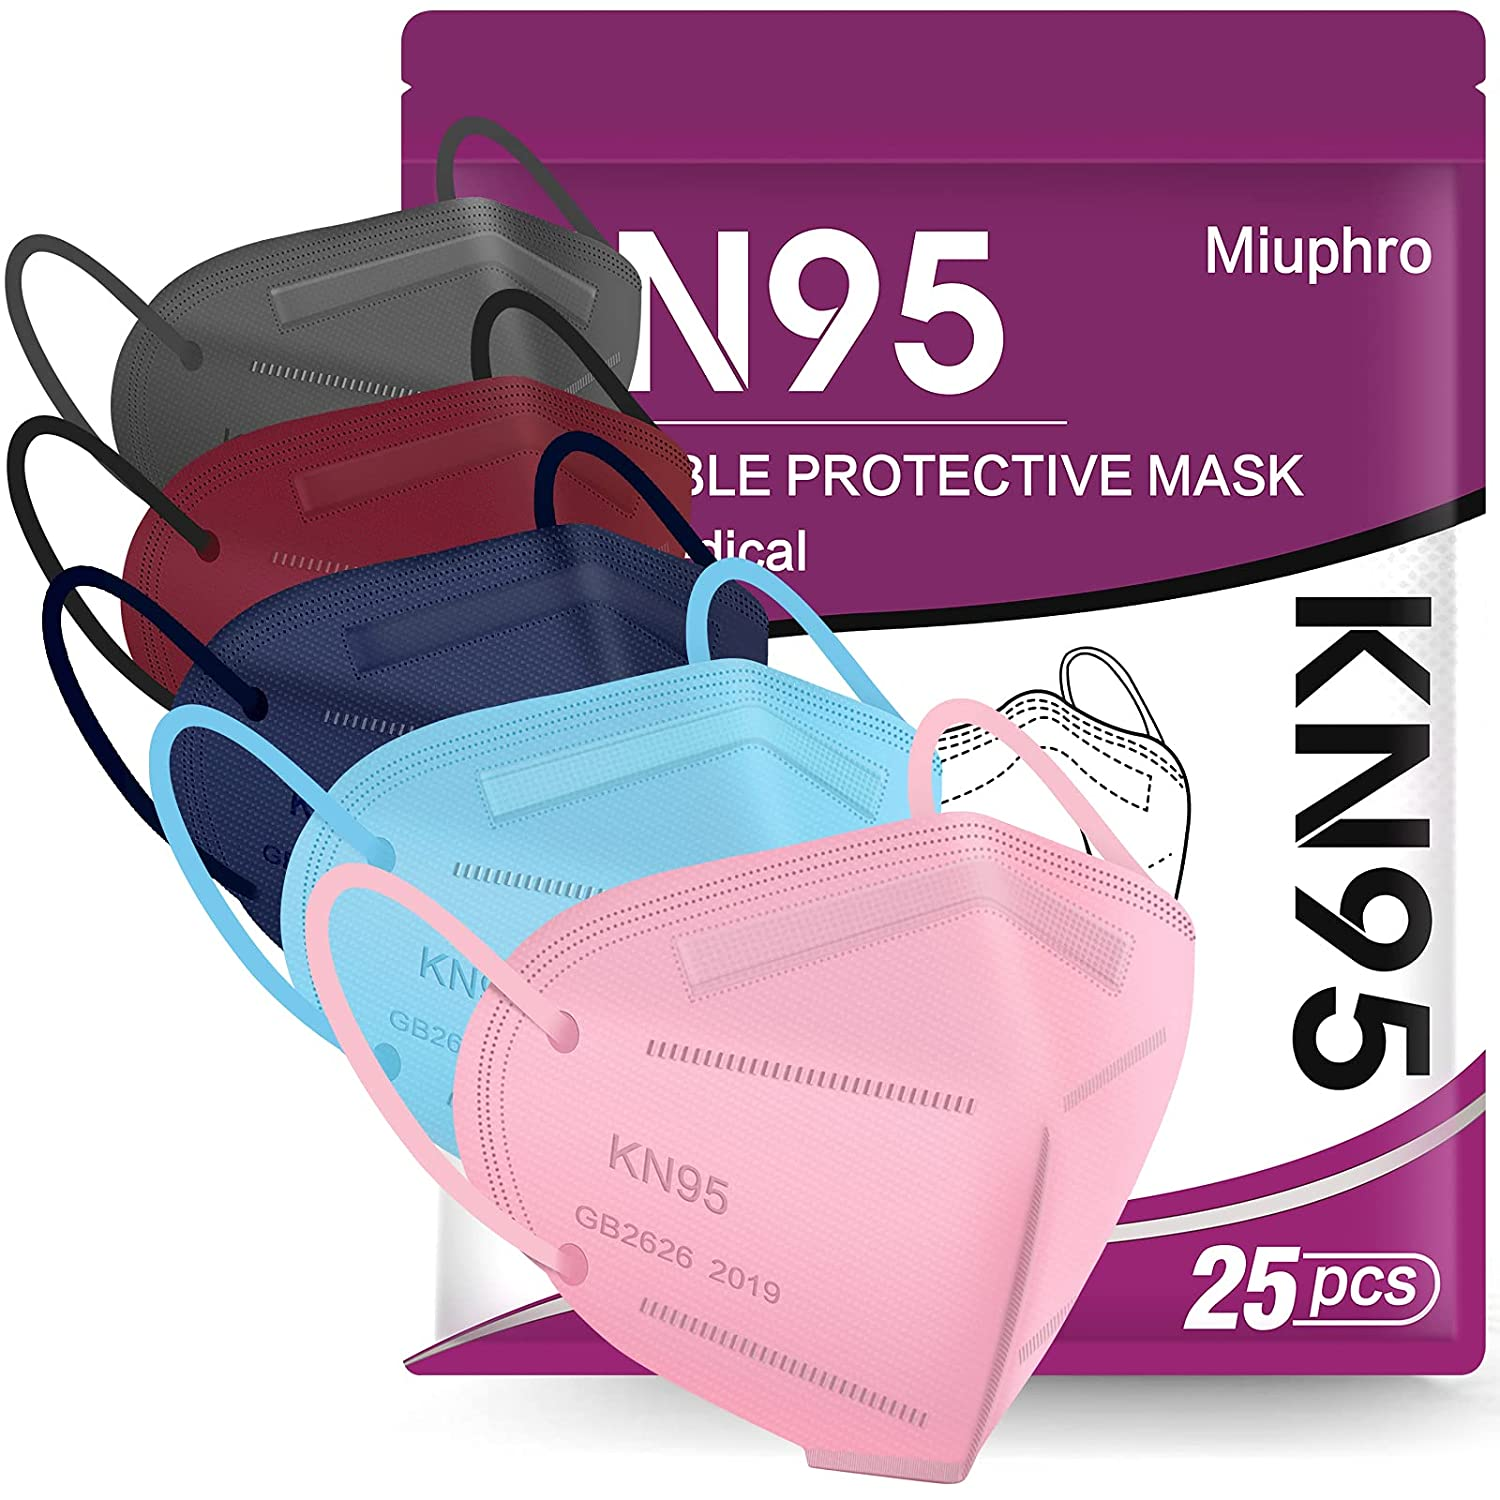 KN95 Face Mask - 25 Pack KN95 Disposable Masks, 5-Ply Protection Cup Dust Mask Efficiency≥95% Against PM2.5 Dust Pollen and Haze-Proof Multicolor